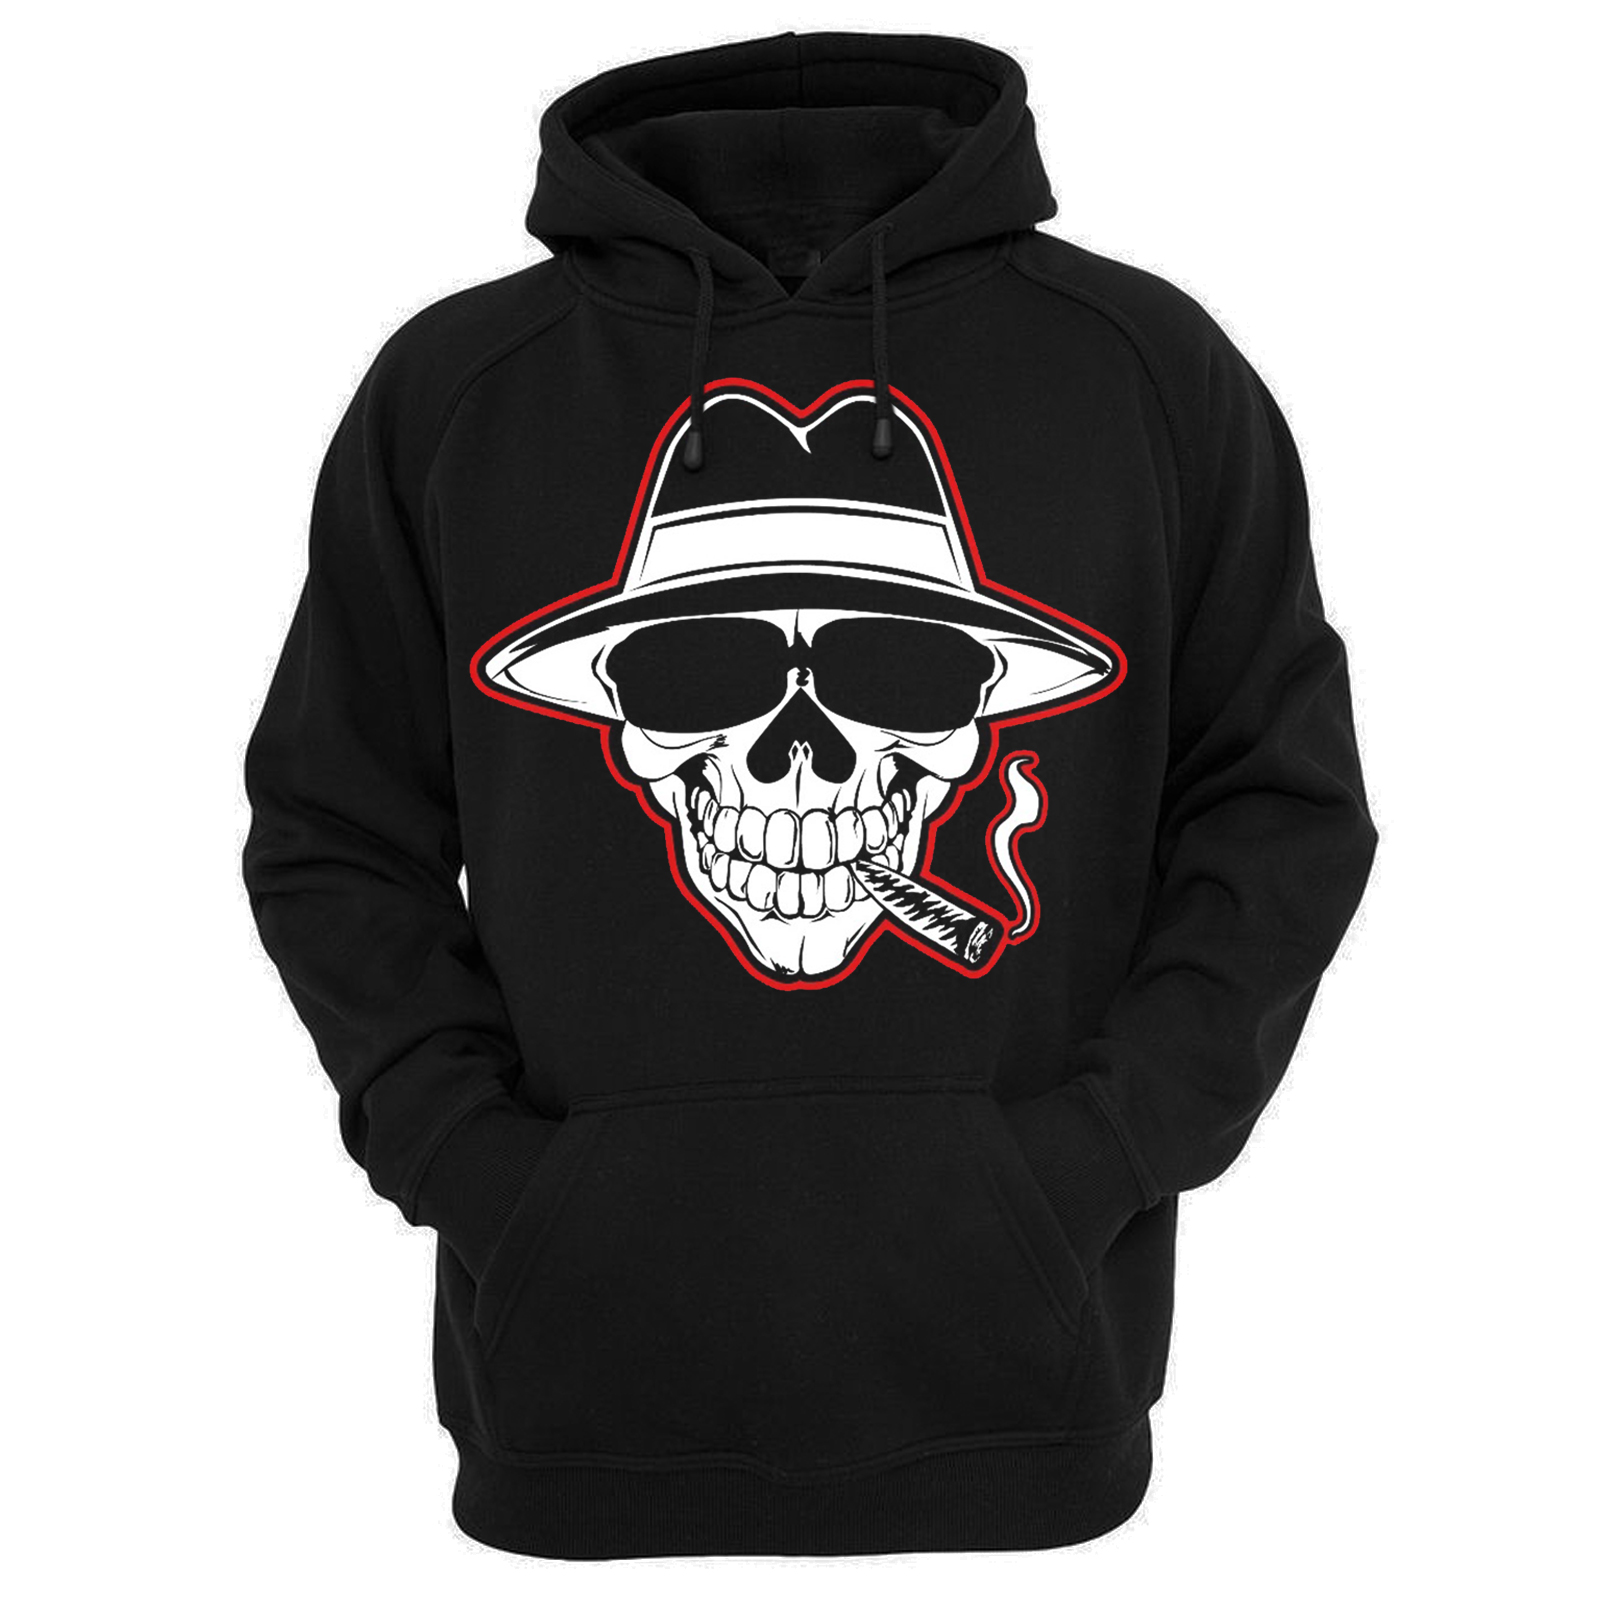 Mobstyle Music Hoodie